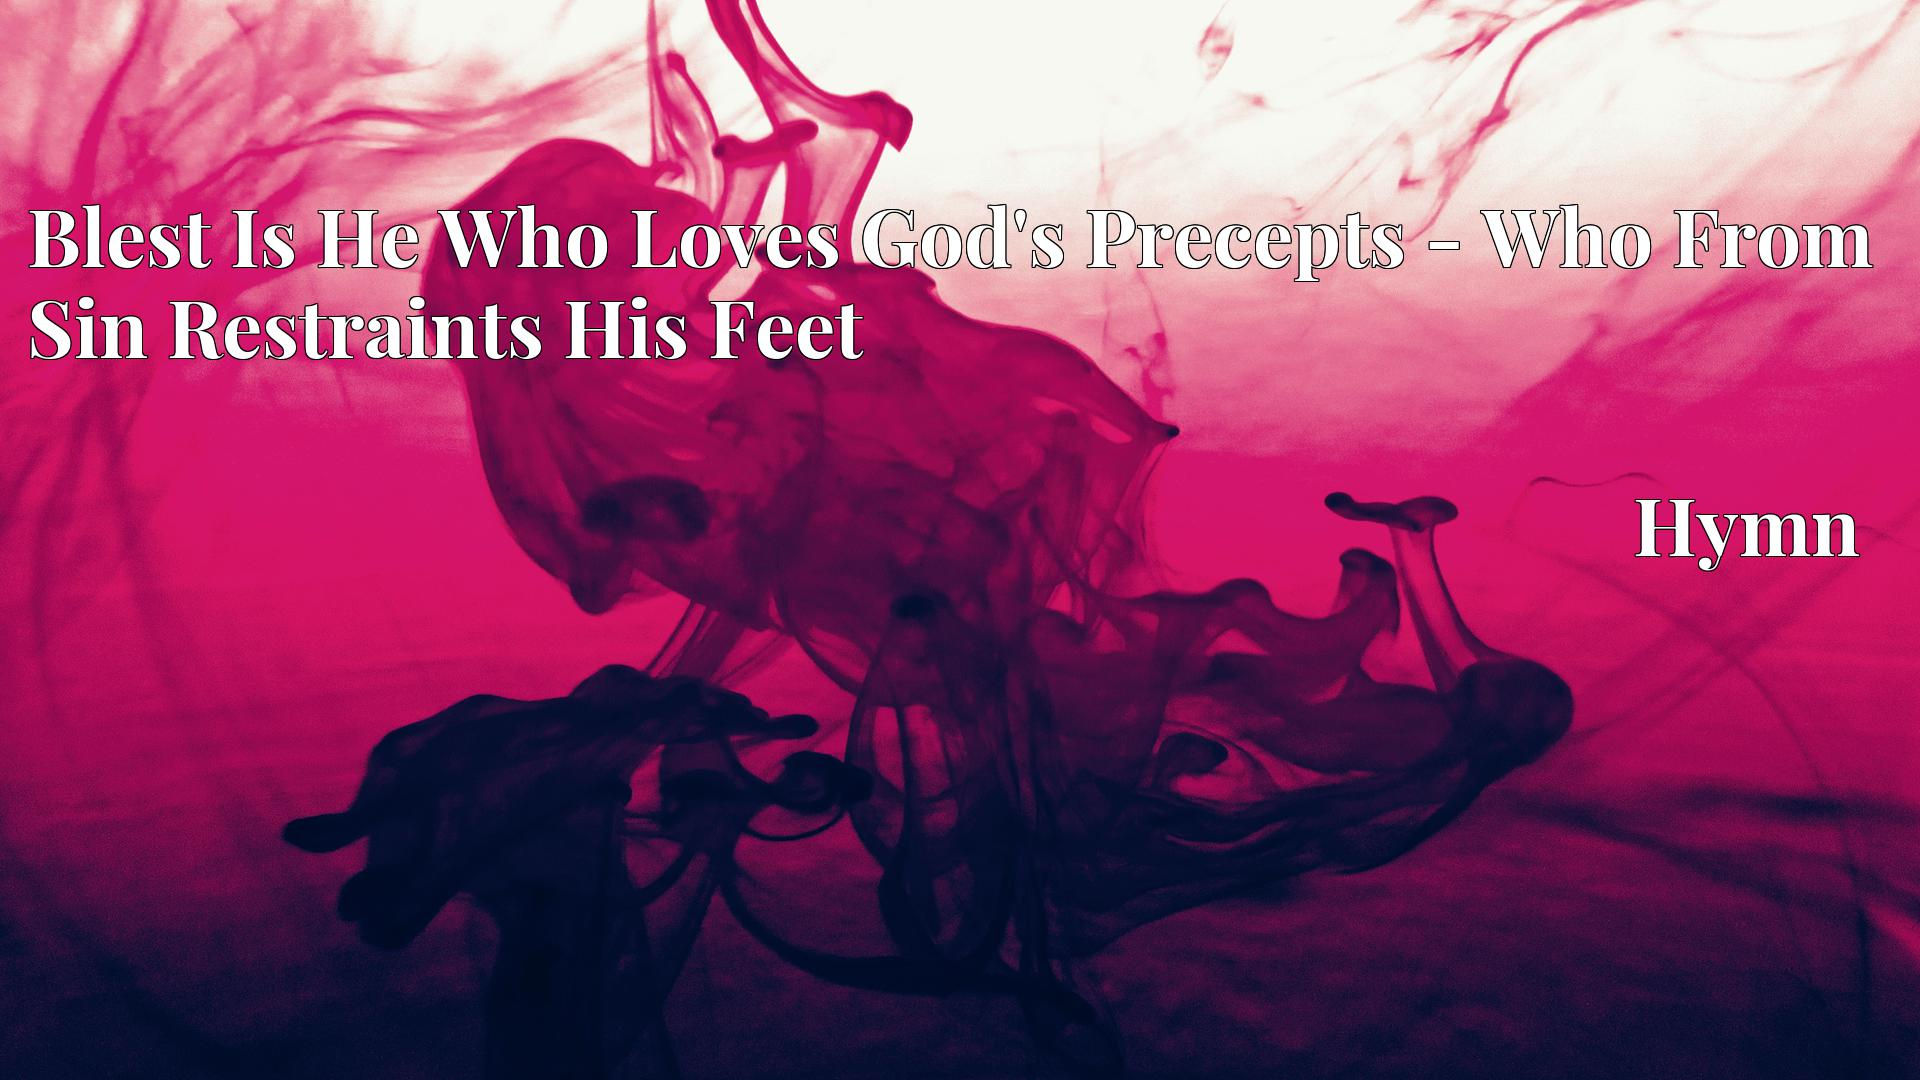 Blest Is He Who Loves God's Precepts - Who From Sin Restraints His Feet Hymn